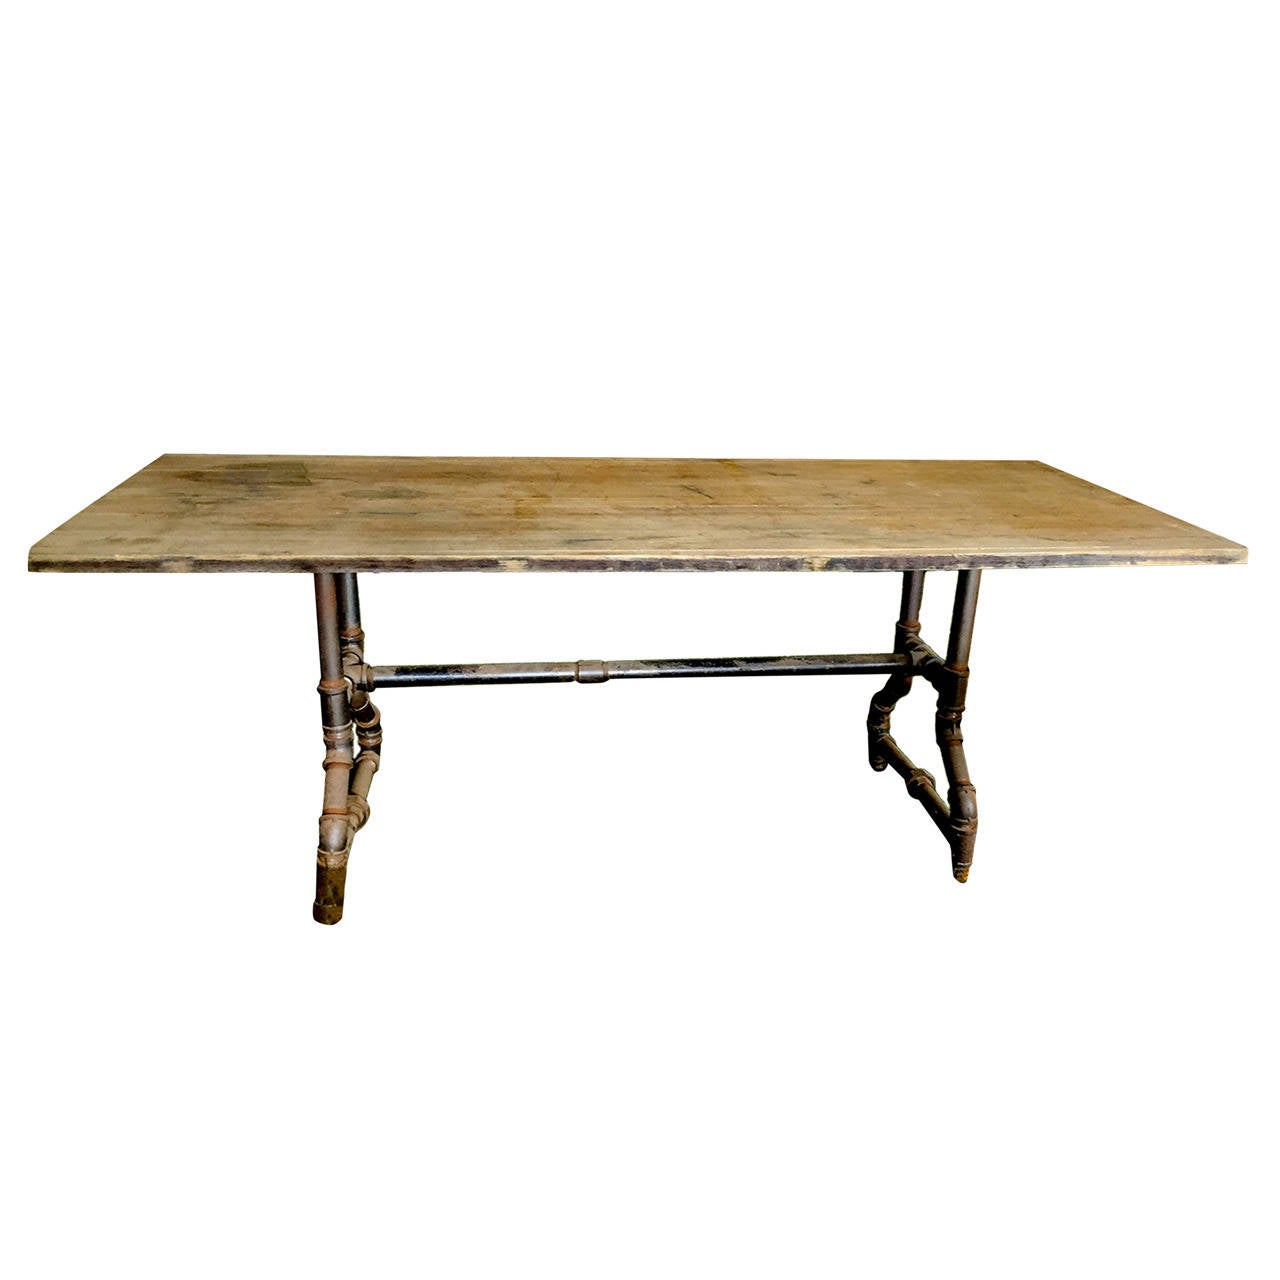 Unusual rectangular industrial dining table For Sale at  : 2545312l from www.1stdibs.com size 1280 x 1280 jpeg 54kB